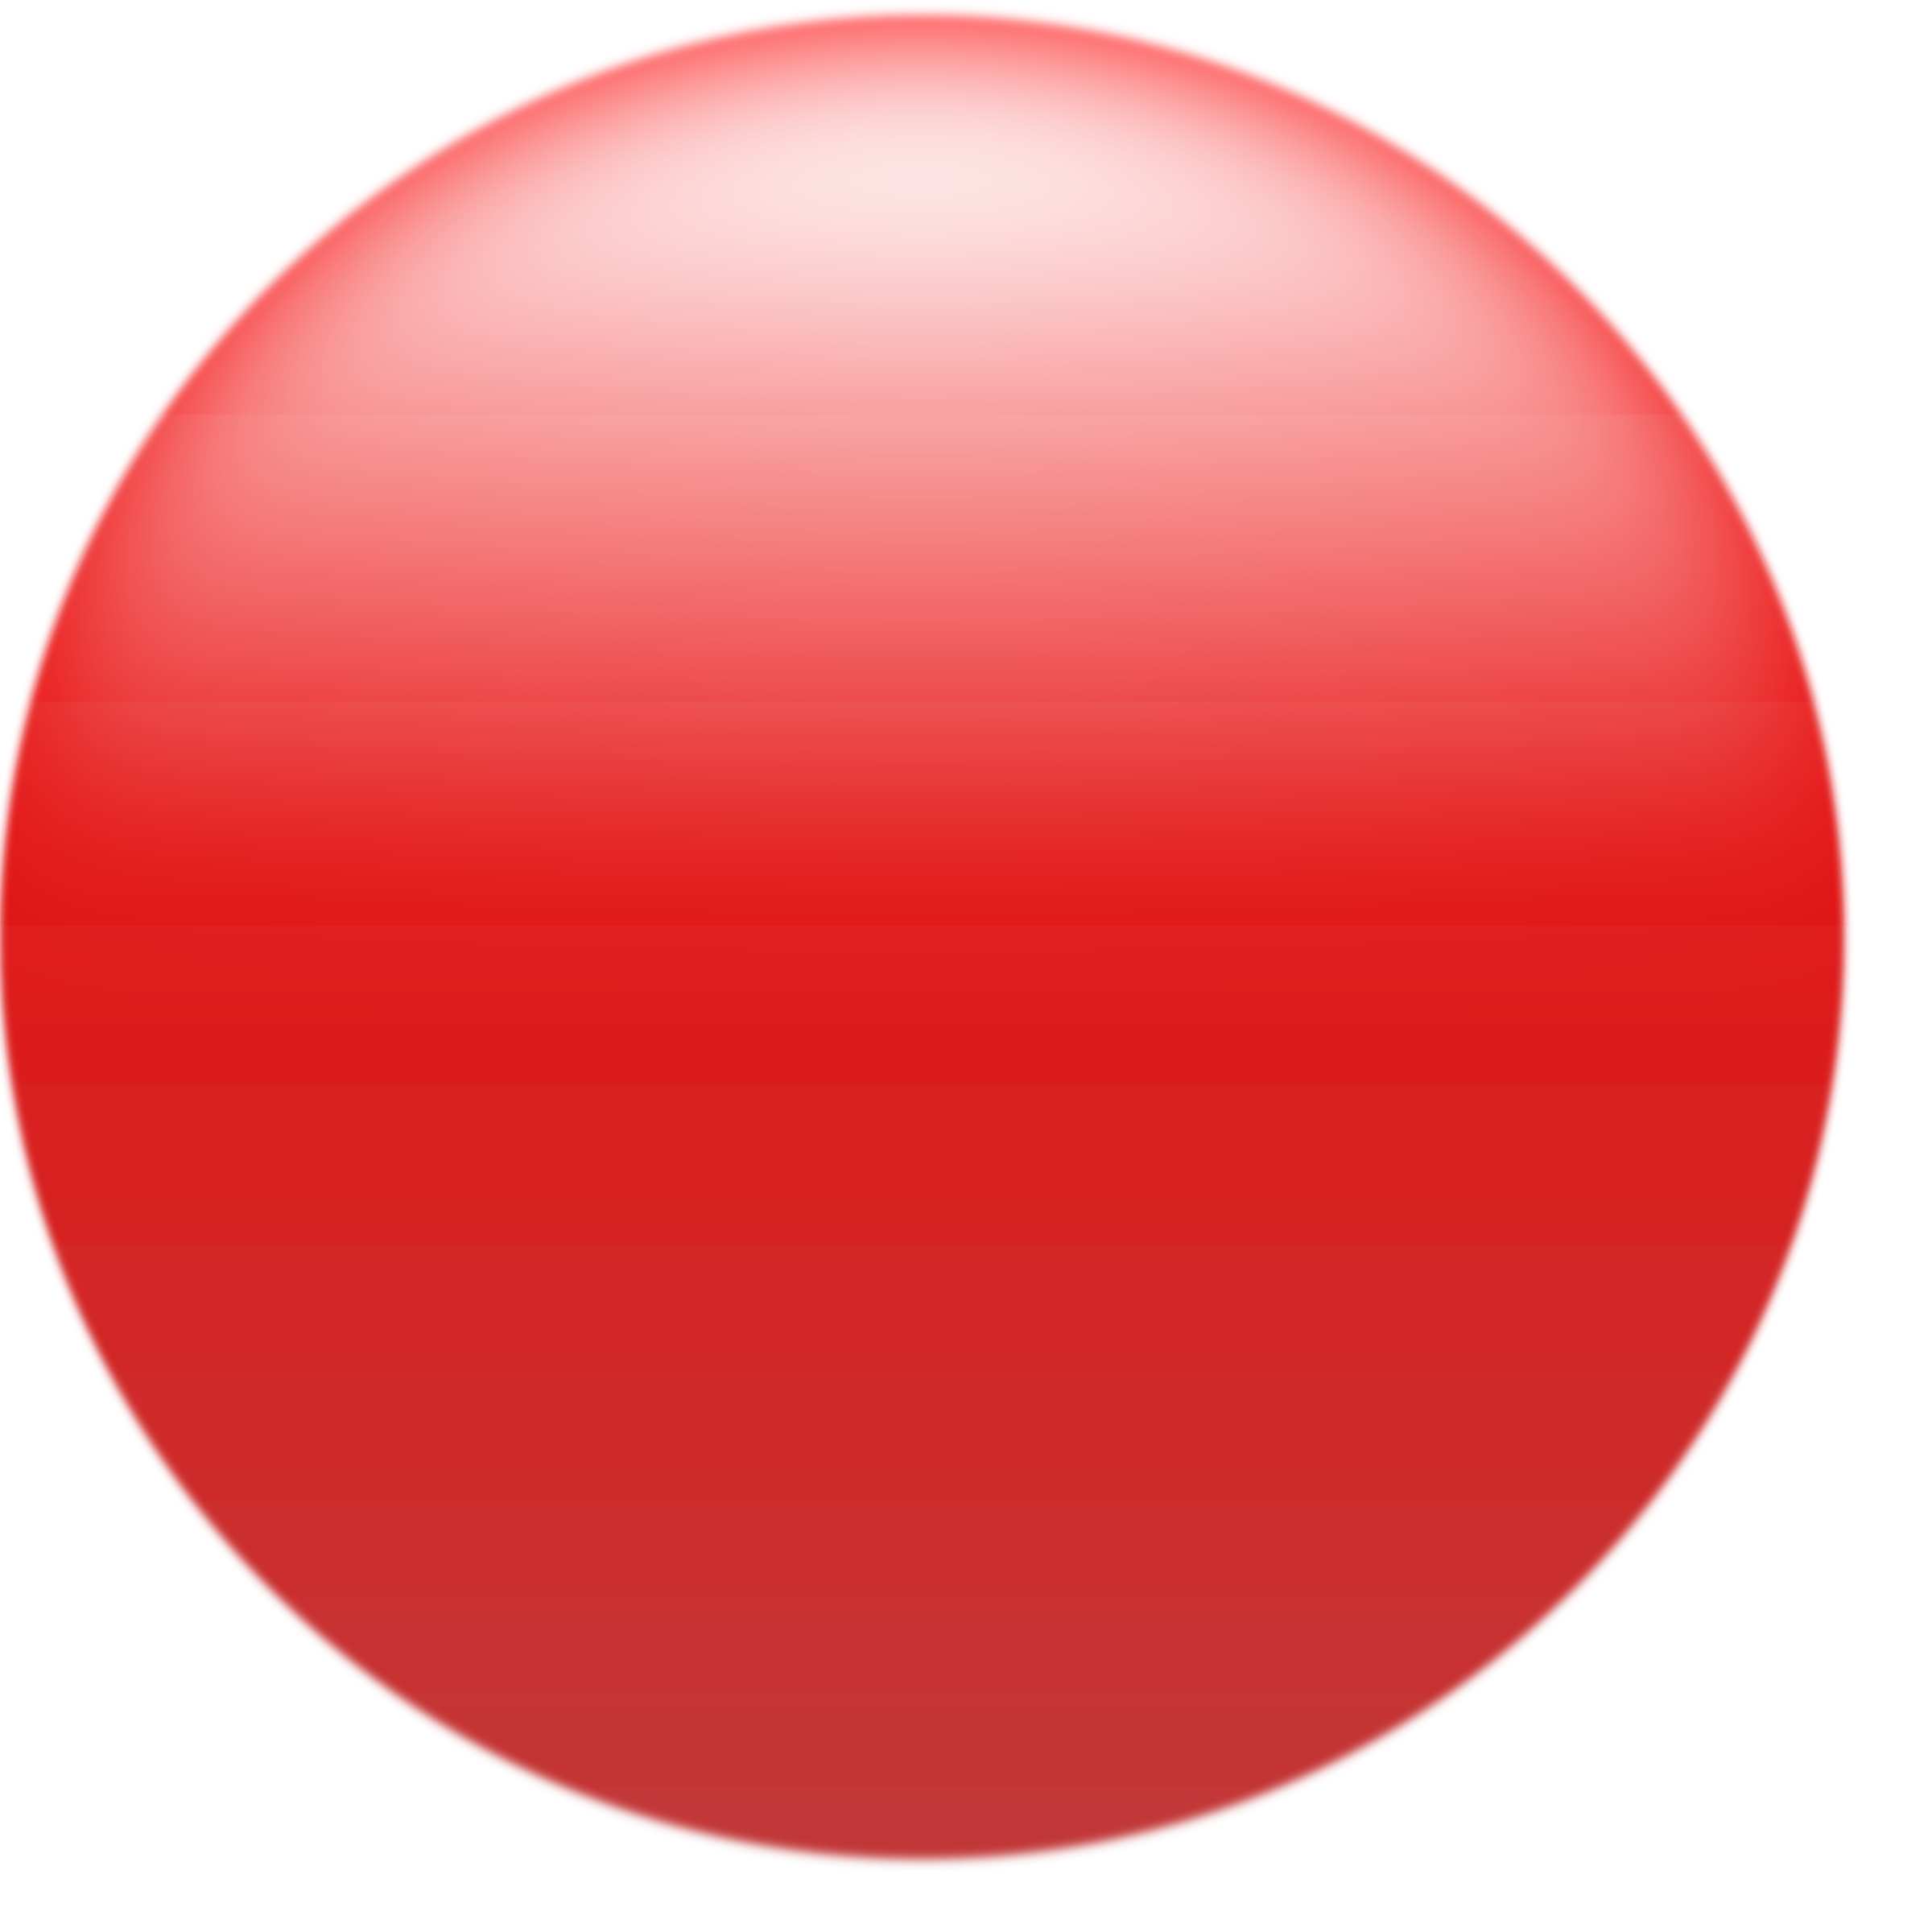 Simple glossy button red. Circle clipart round shape